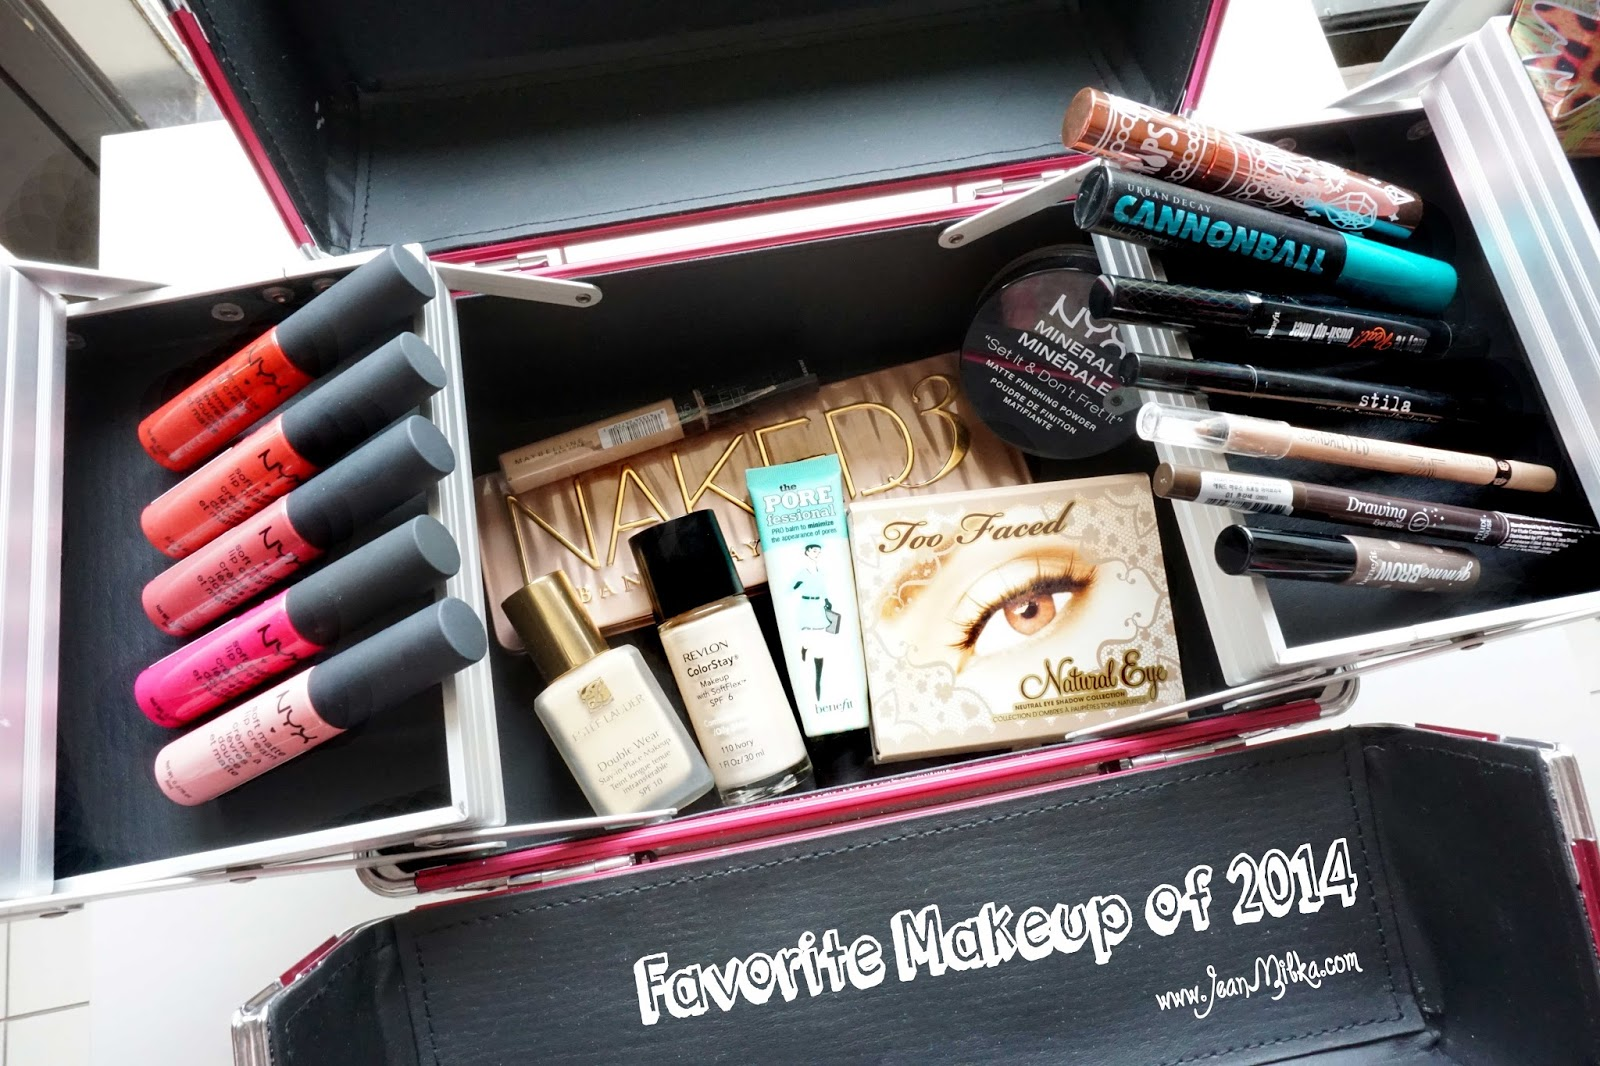 favorites makeup of 2014